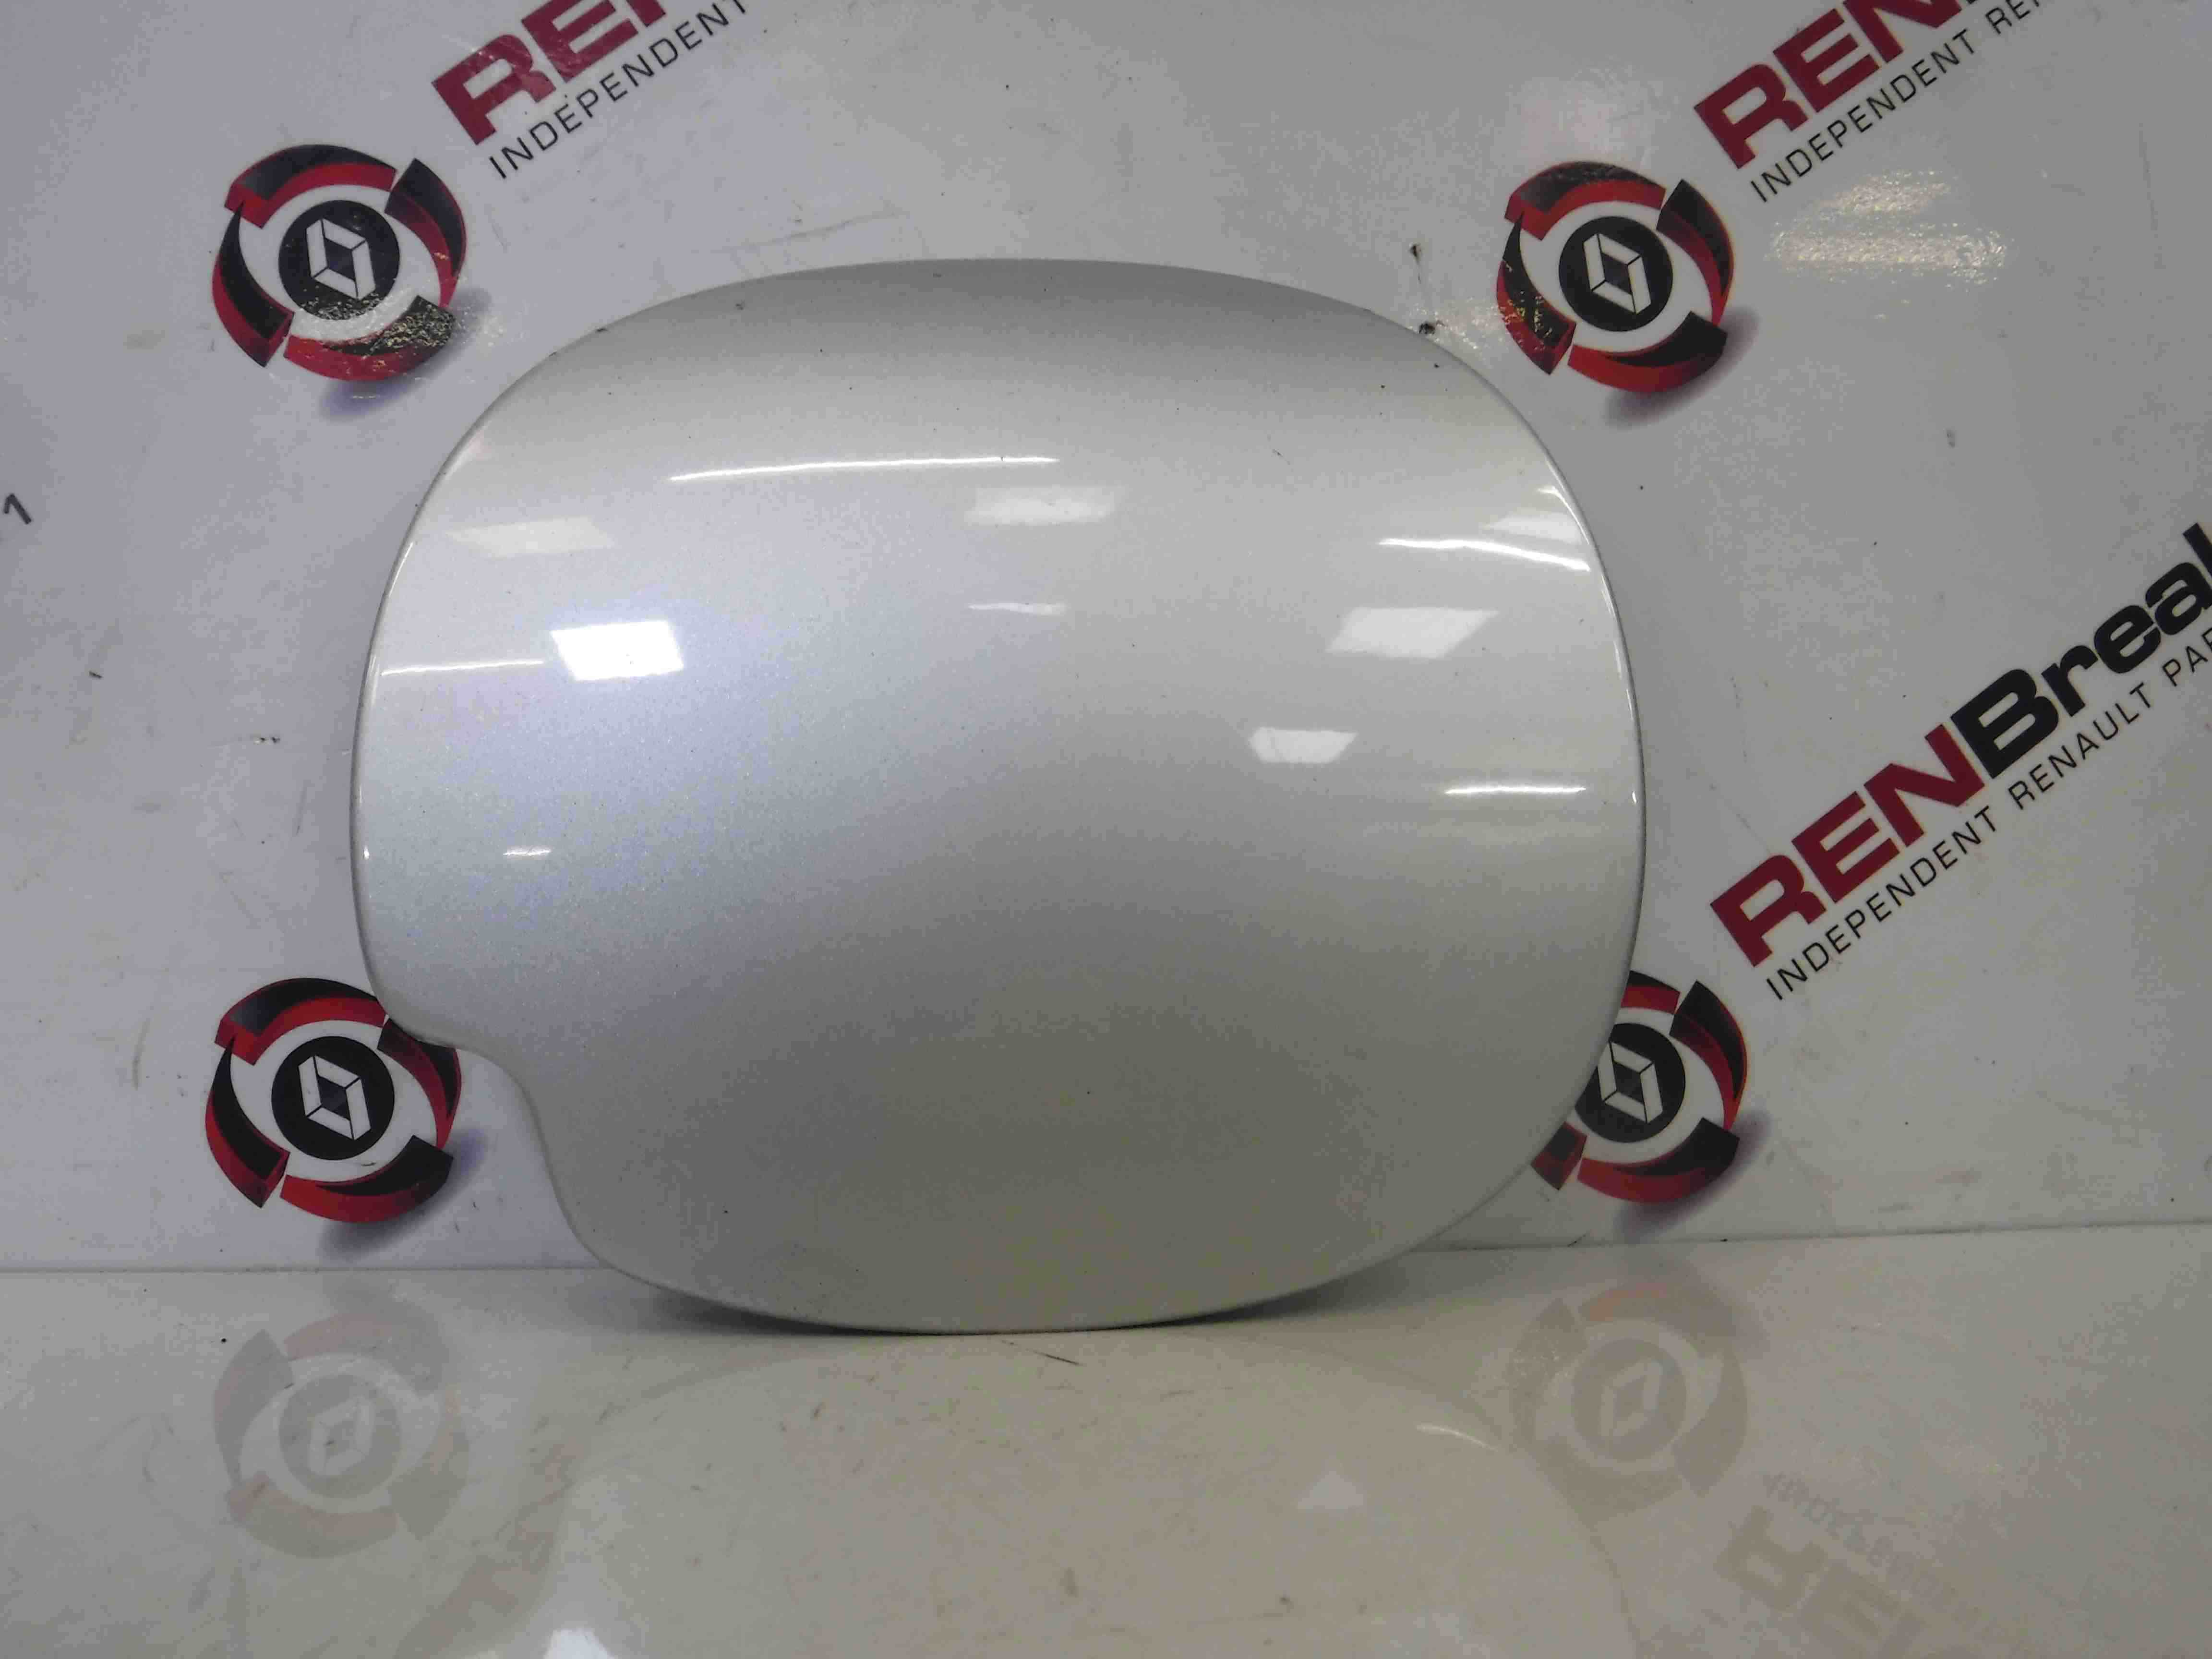 Renault Clio MK2 2001-2006 Fuel Flap Cover Silver TED69 7700836756